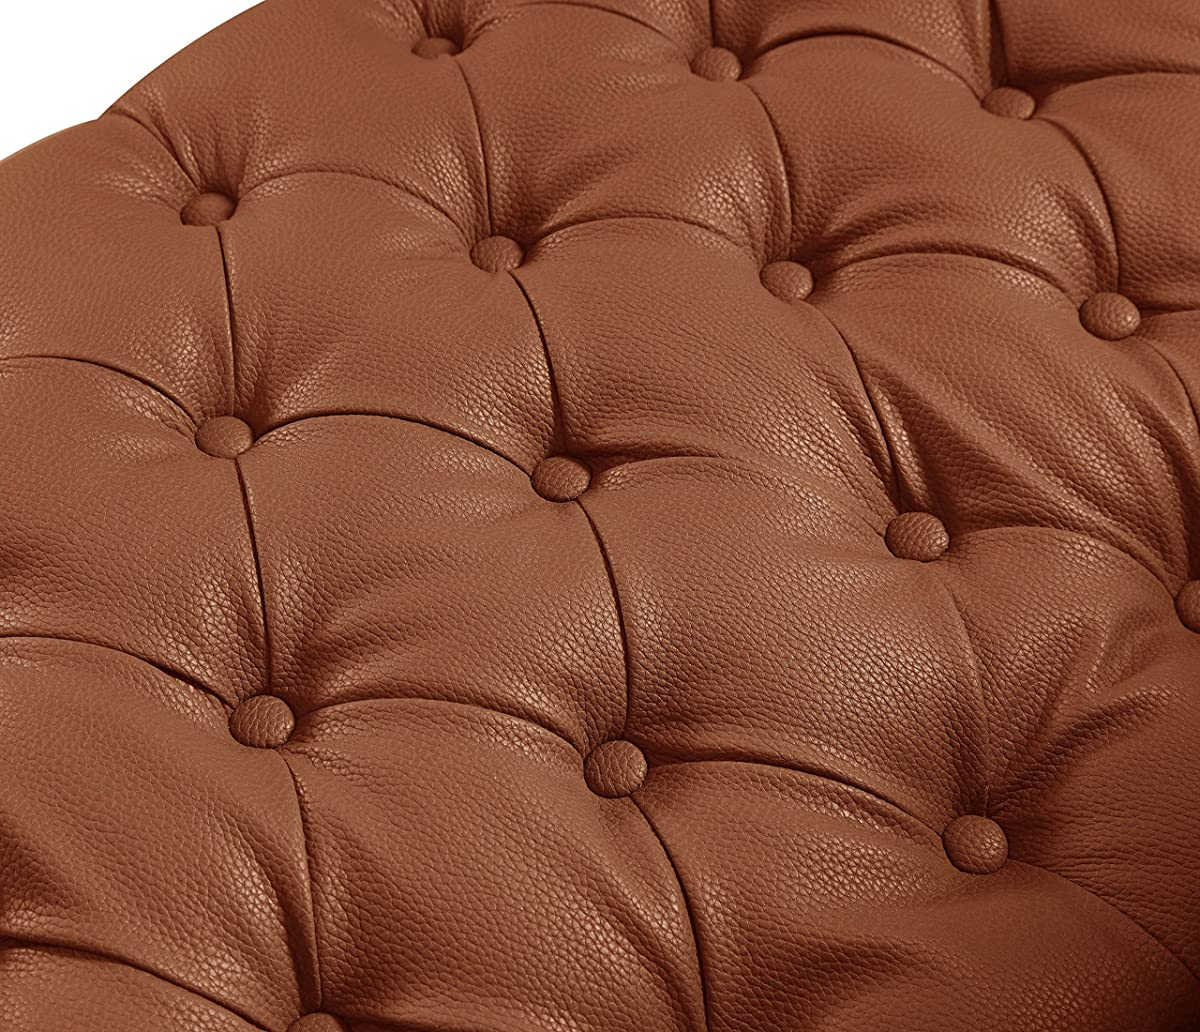 Iconic Home Winston PU Leather Modern Contemporary Button Tufted with Gold Nailhead Trim Goldtone Metal Y-leg Sofa, Brown